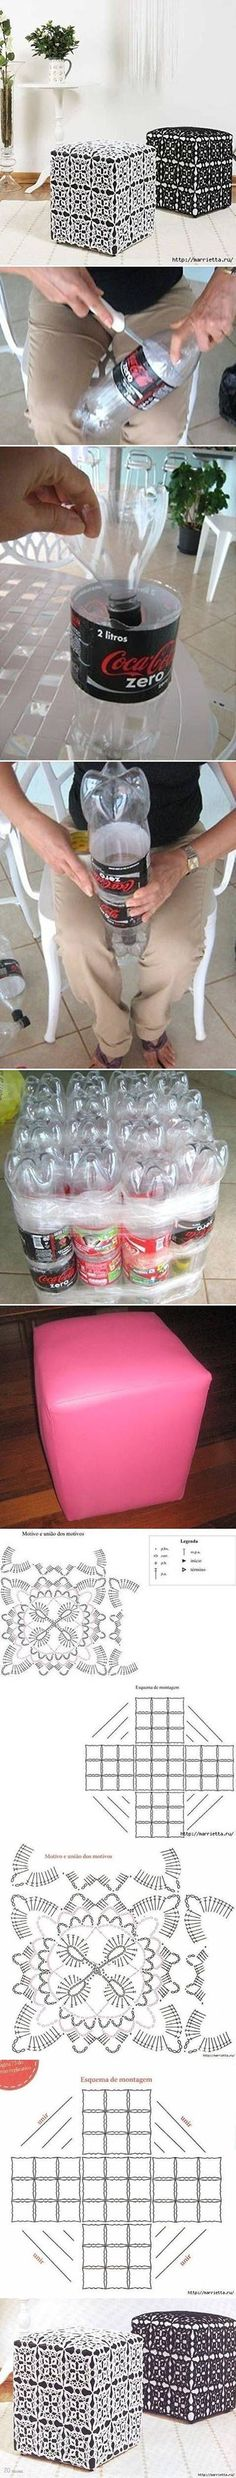 2  DIY Ottoman Out of Plastic Bottles99b5 | DIY